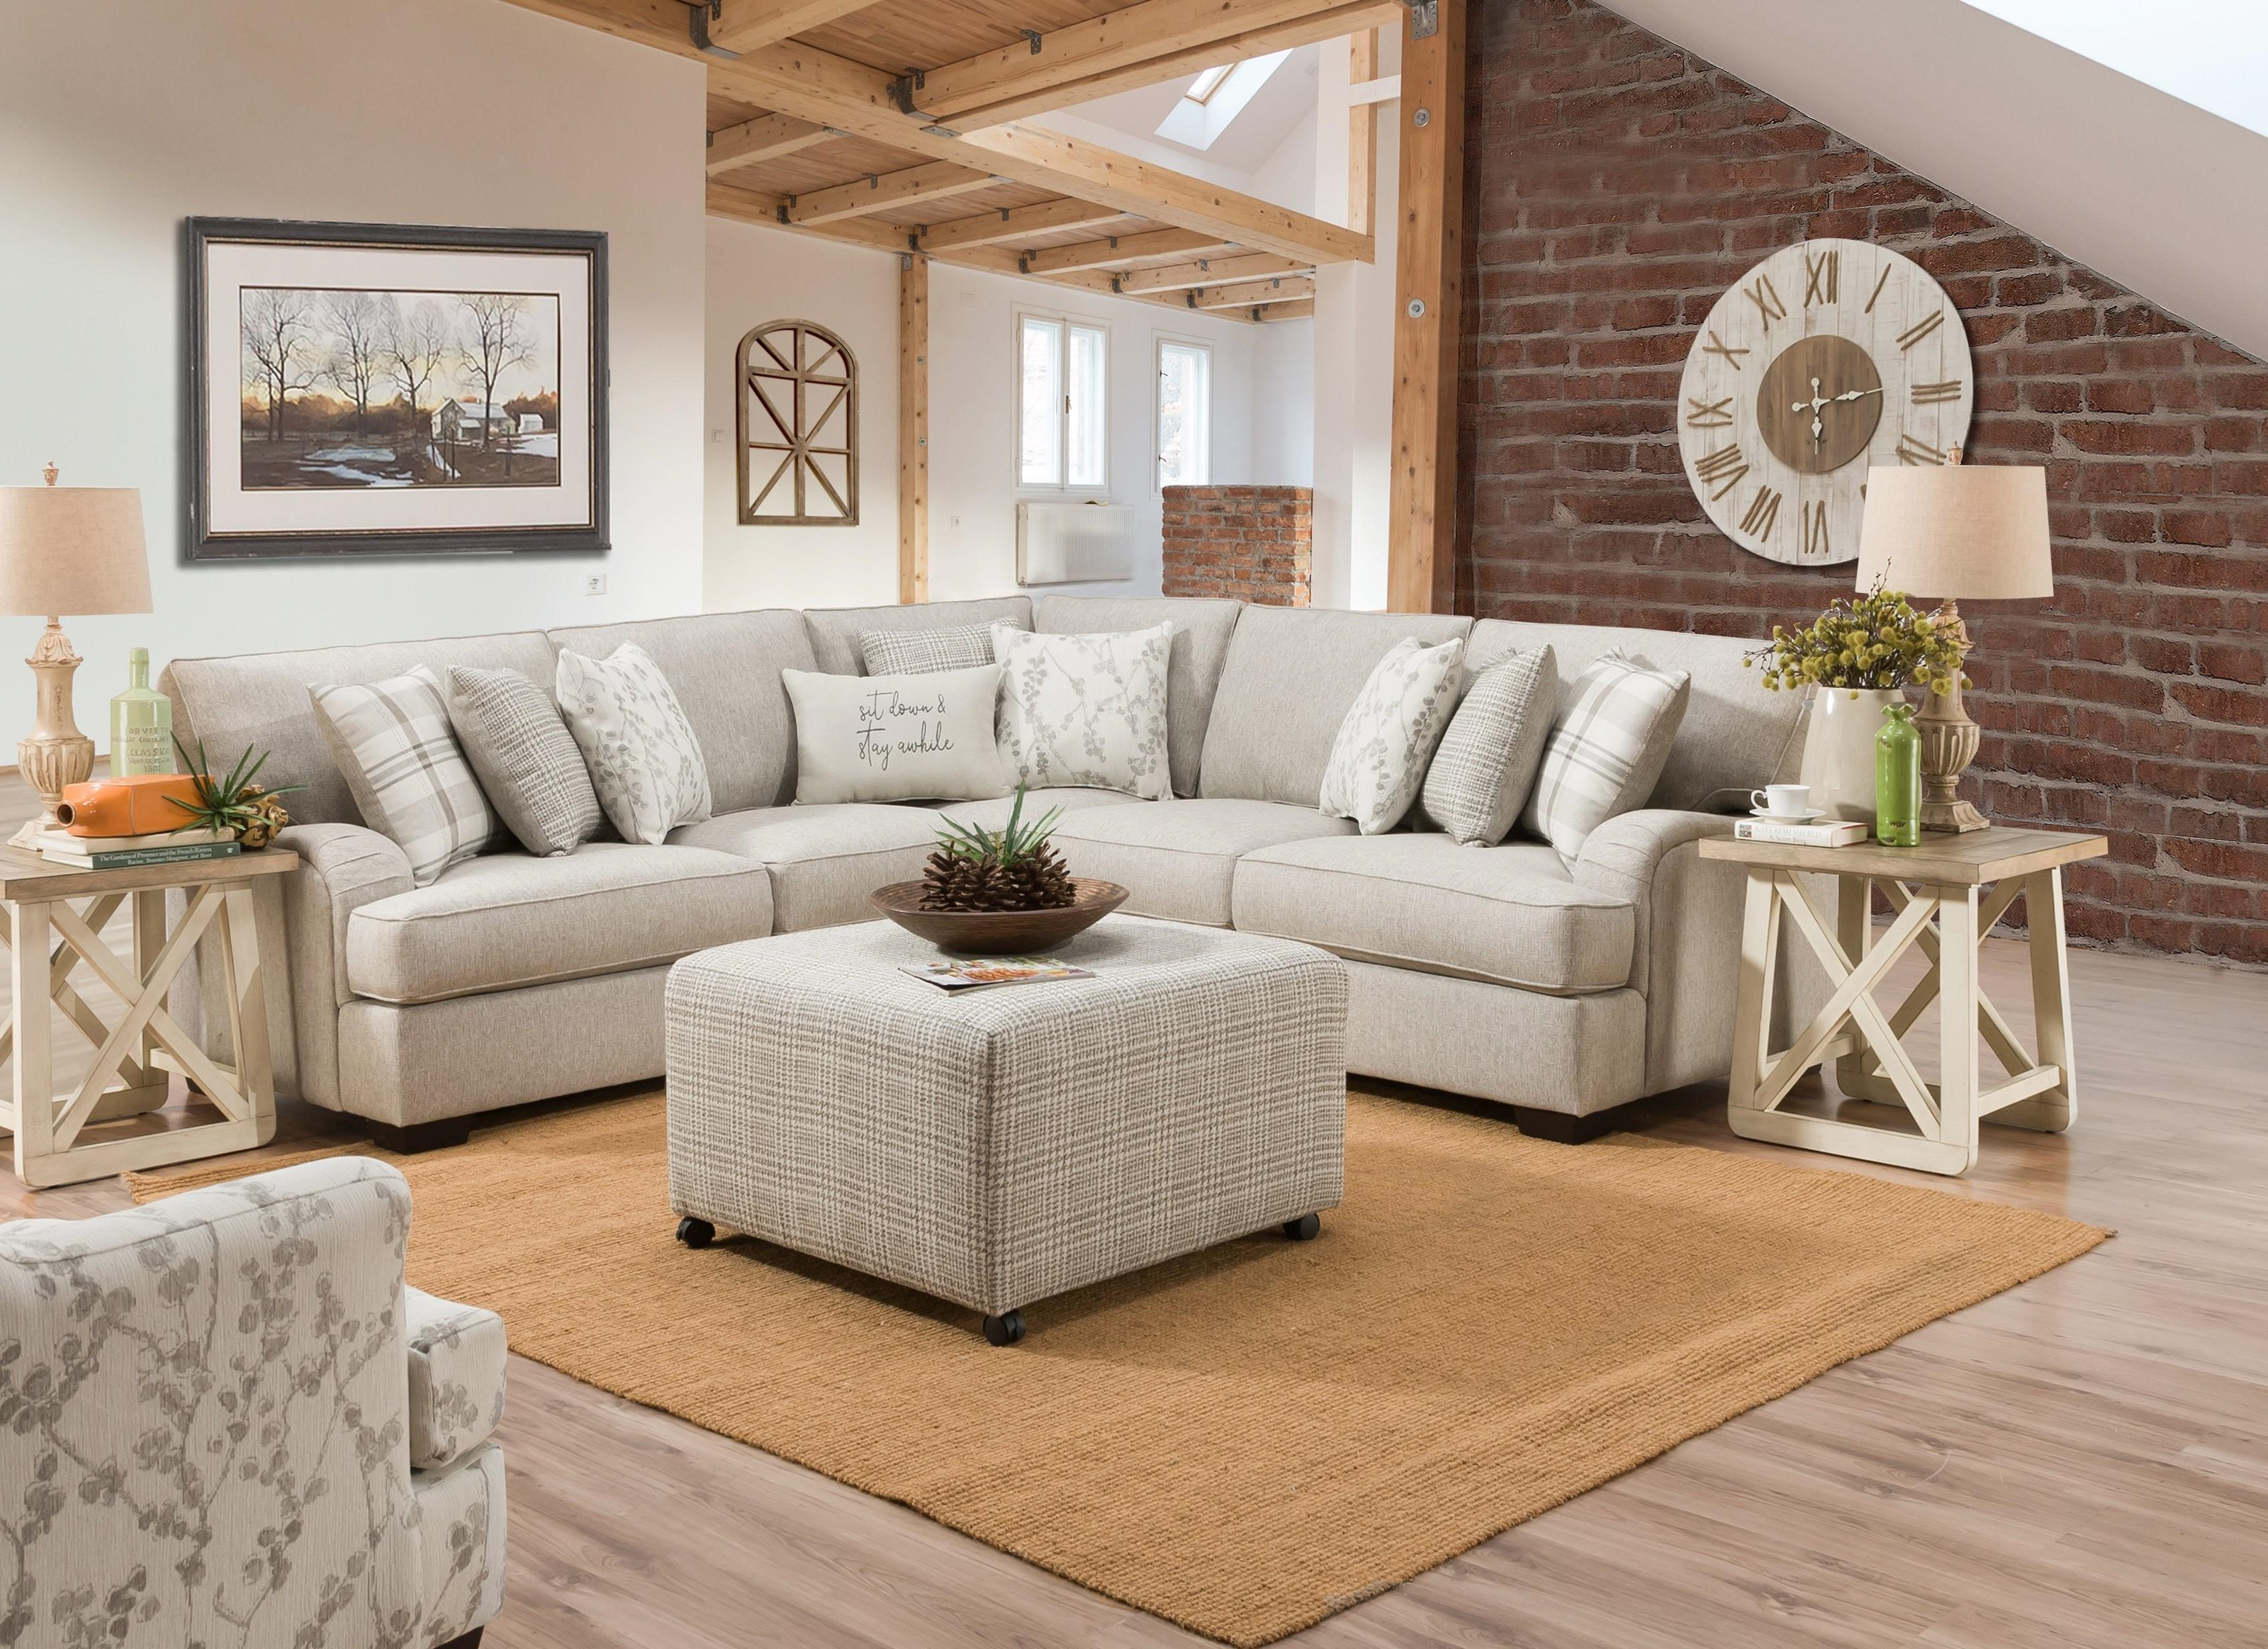 1100 Sectional TWO PIECE SECTIONAL by Corinthian at Furniture Fair - North Carolina